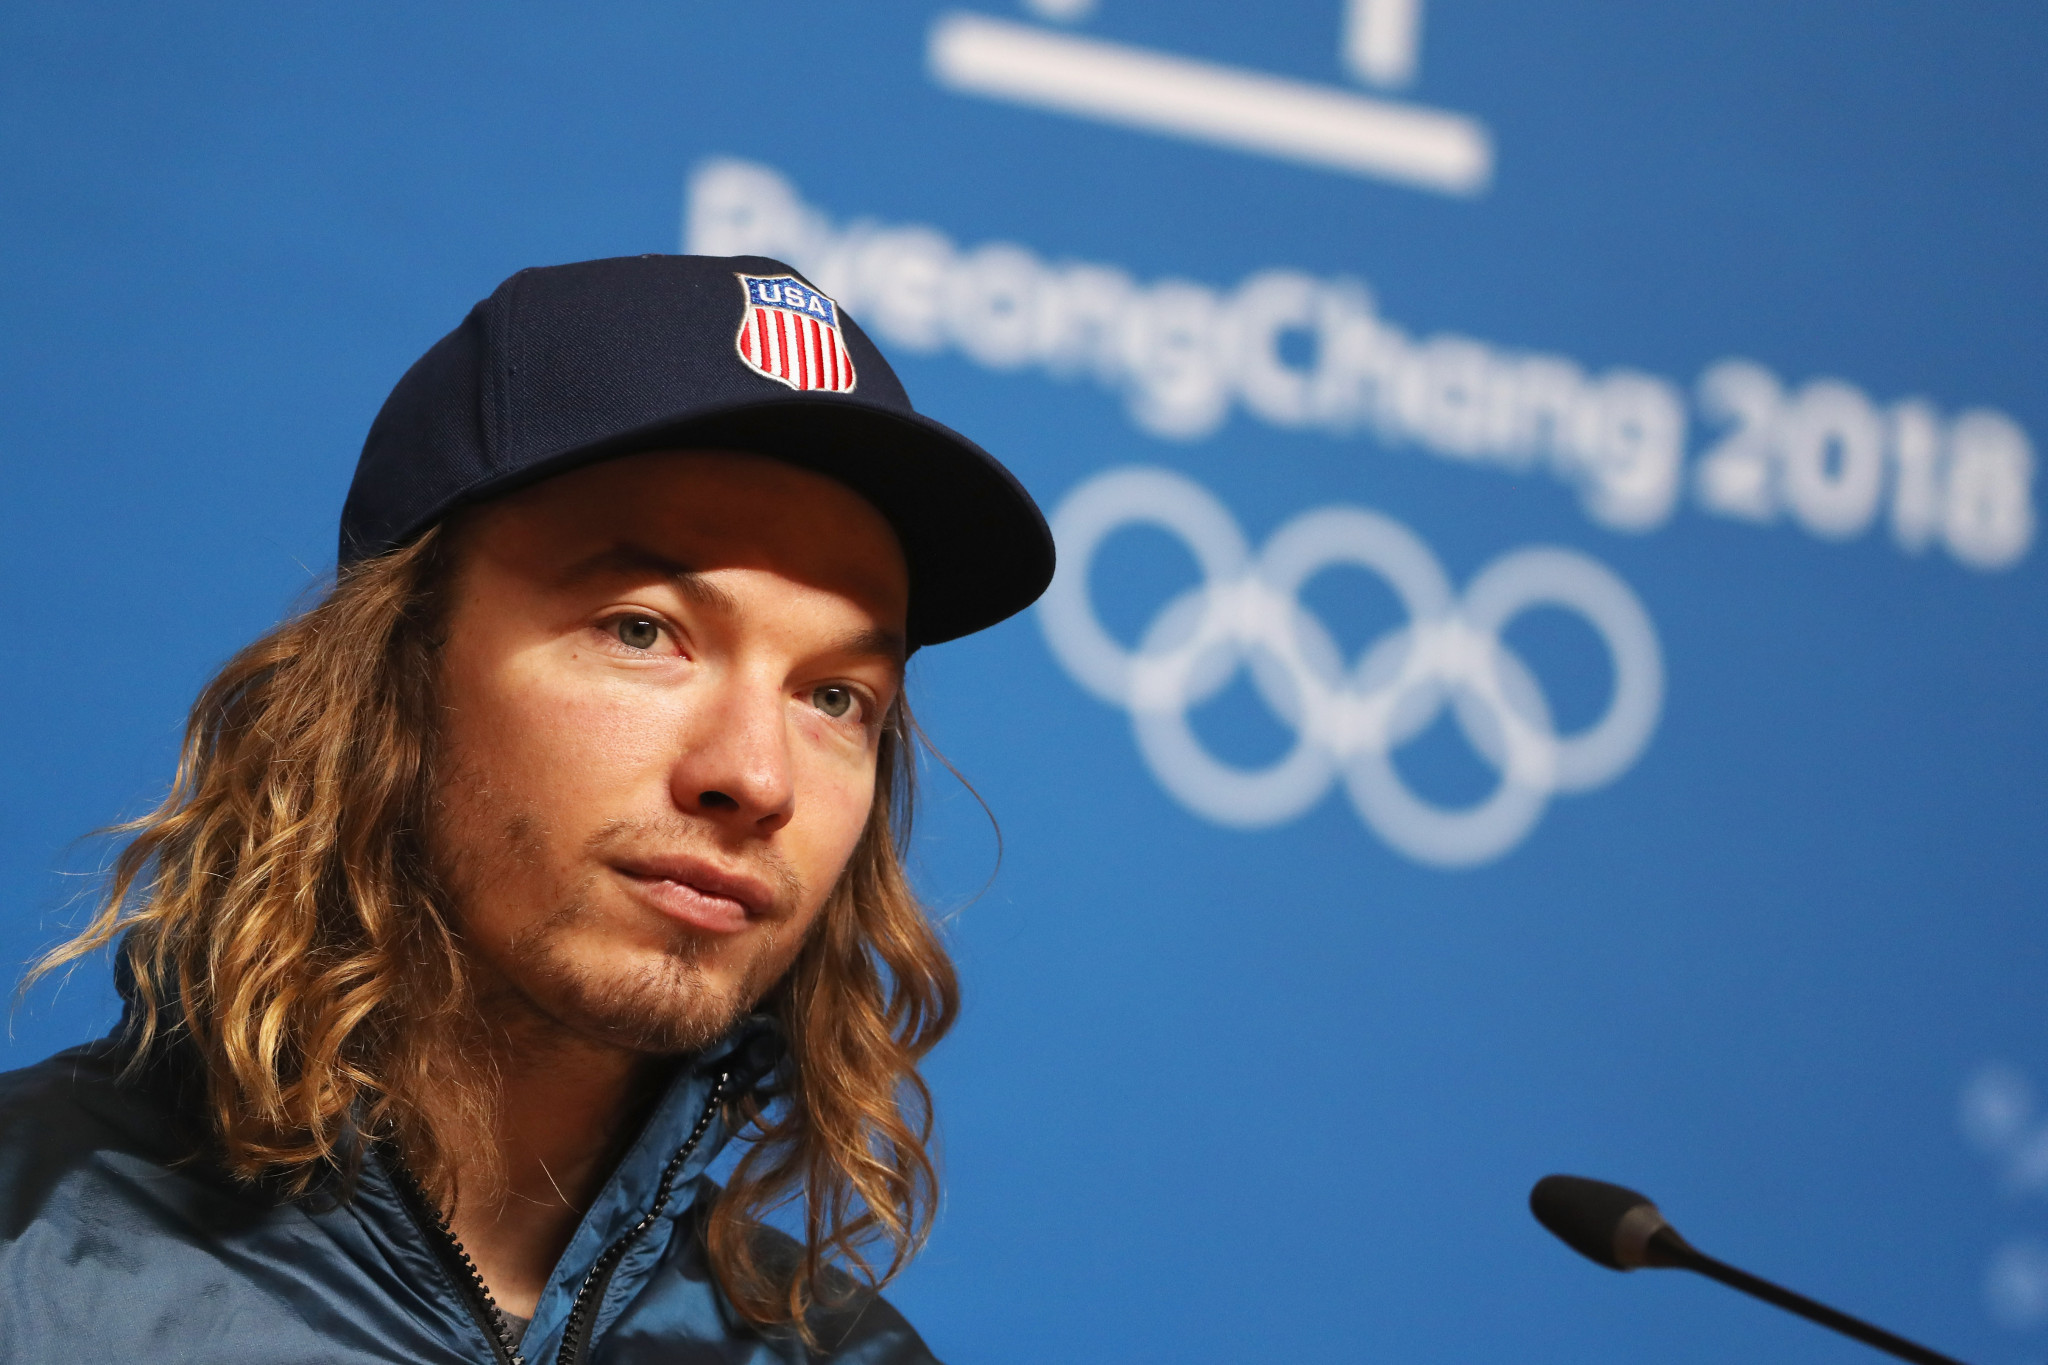 Olympic champions top qualification at FIS Ski Halfpipe World Cup